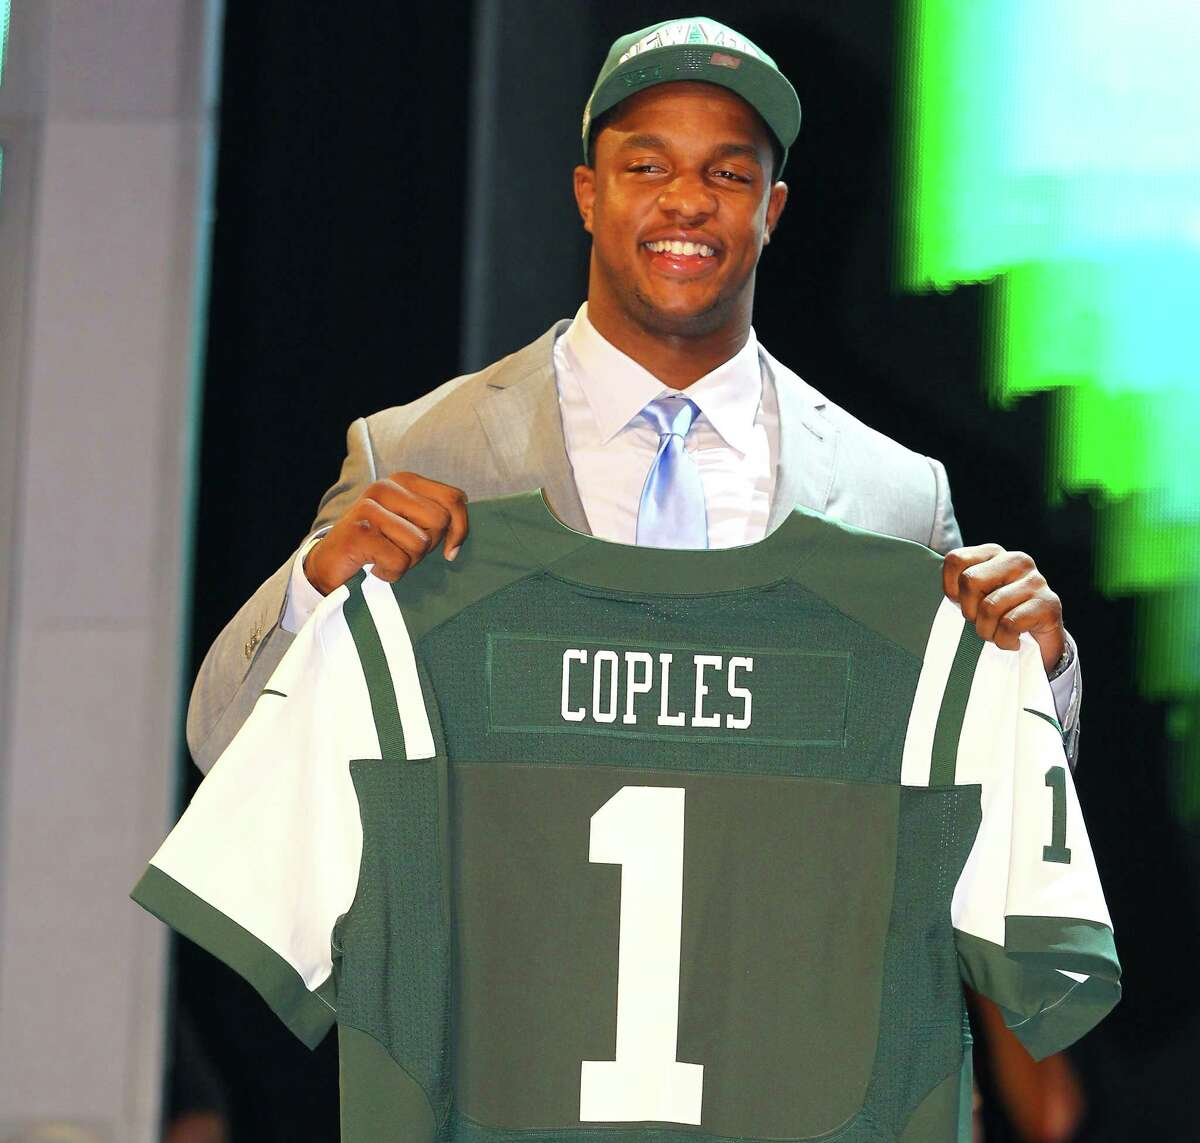 Quinton Coples of North Carolina poses with a Jets jersey after New York took him with the 16th pick in the NFL draft Thursday night in New York.